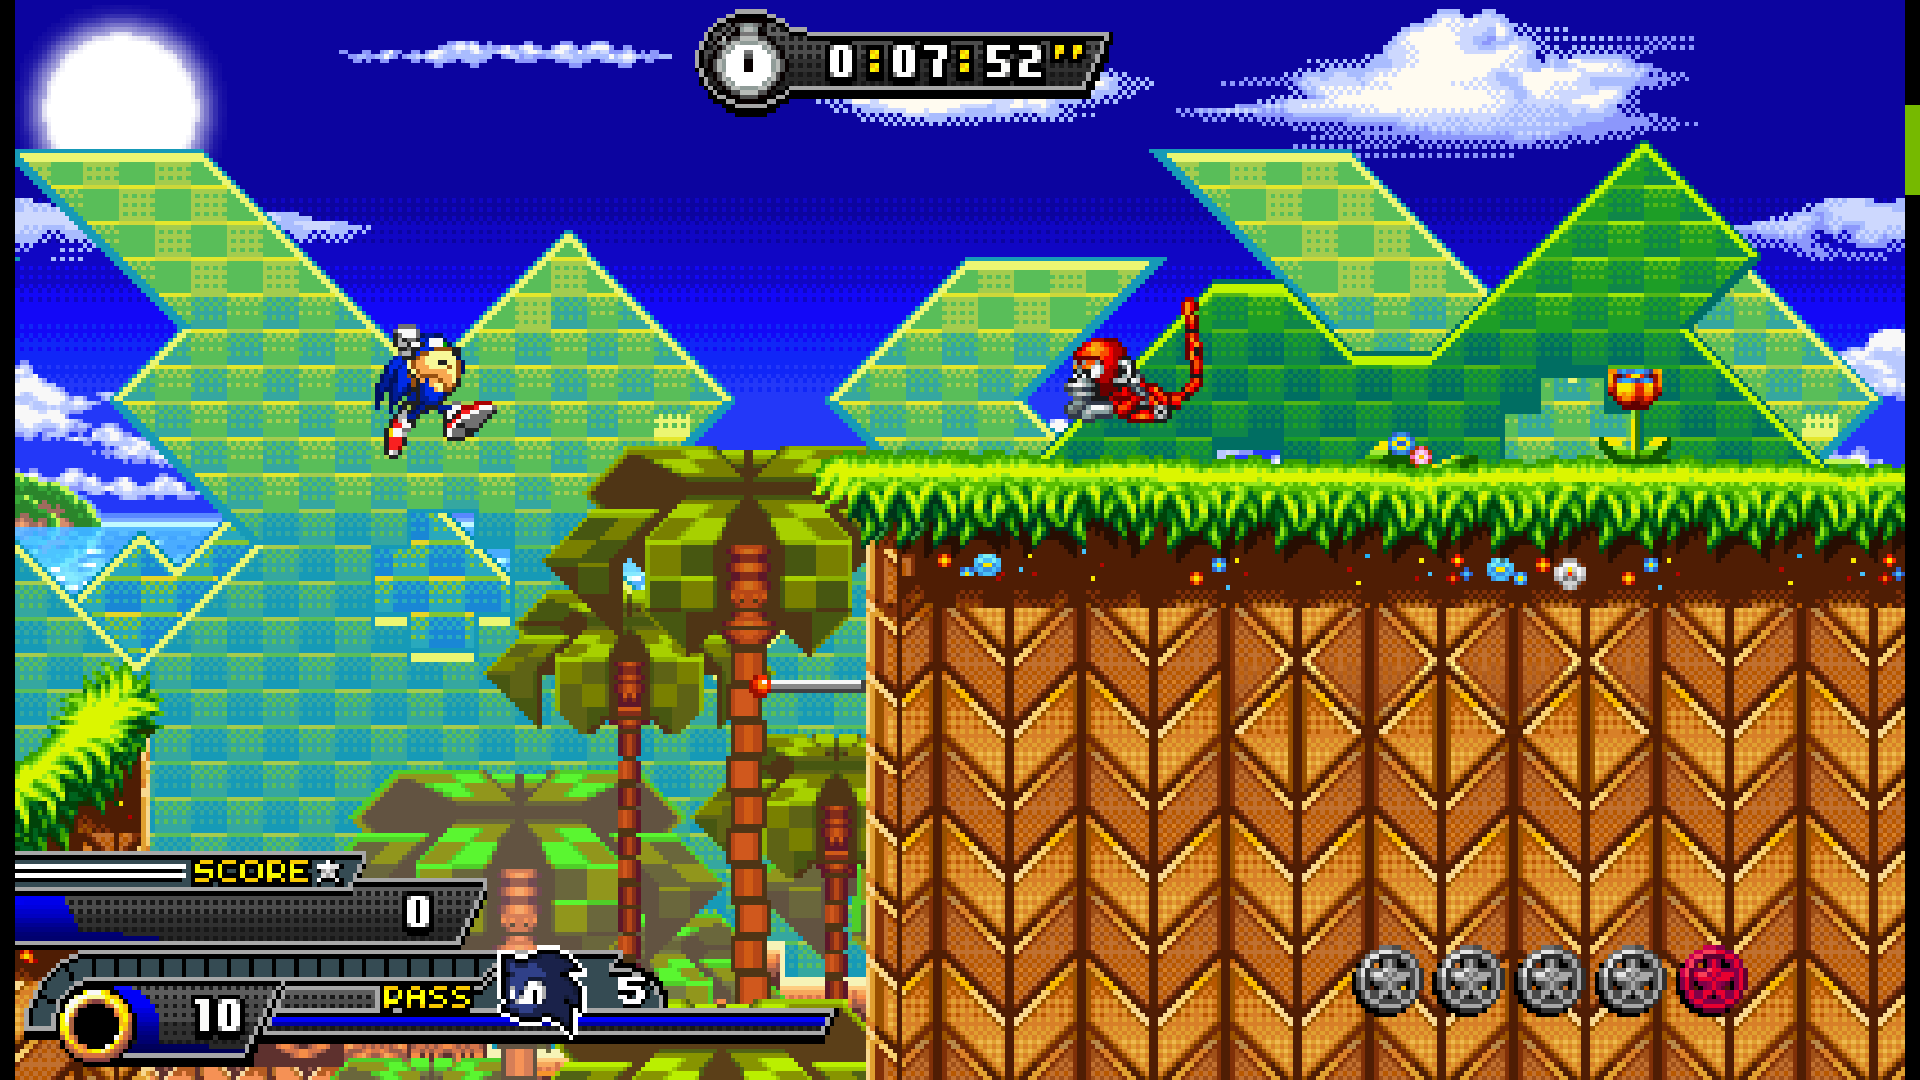 Sonic Advance 4 Advanced 8_20_2020 11_46_40 PM.png